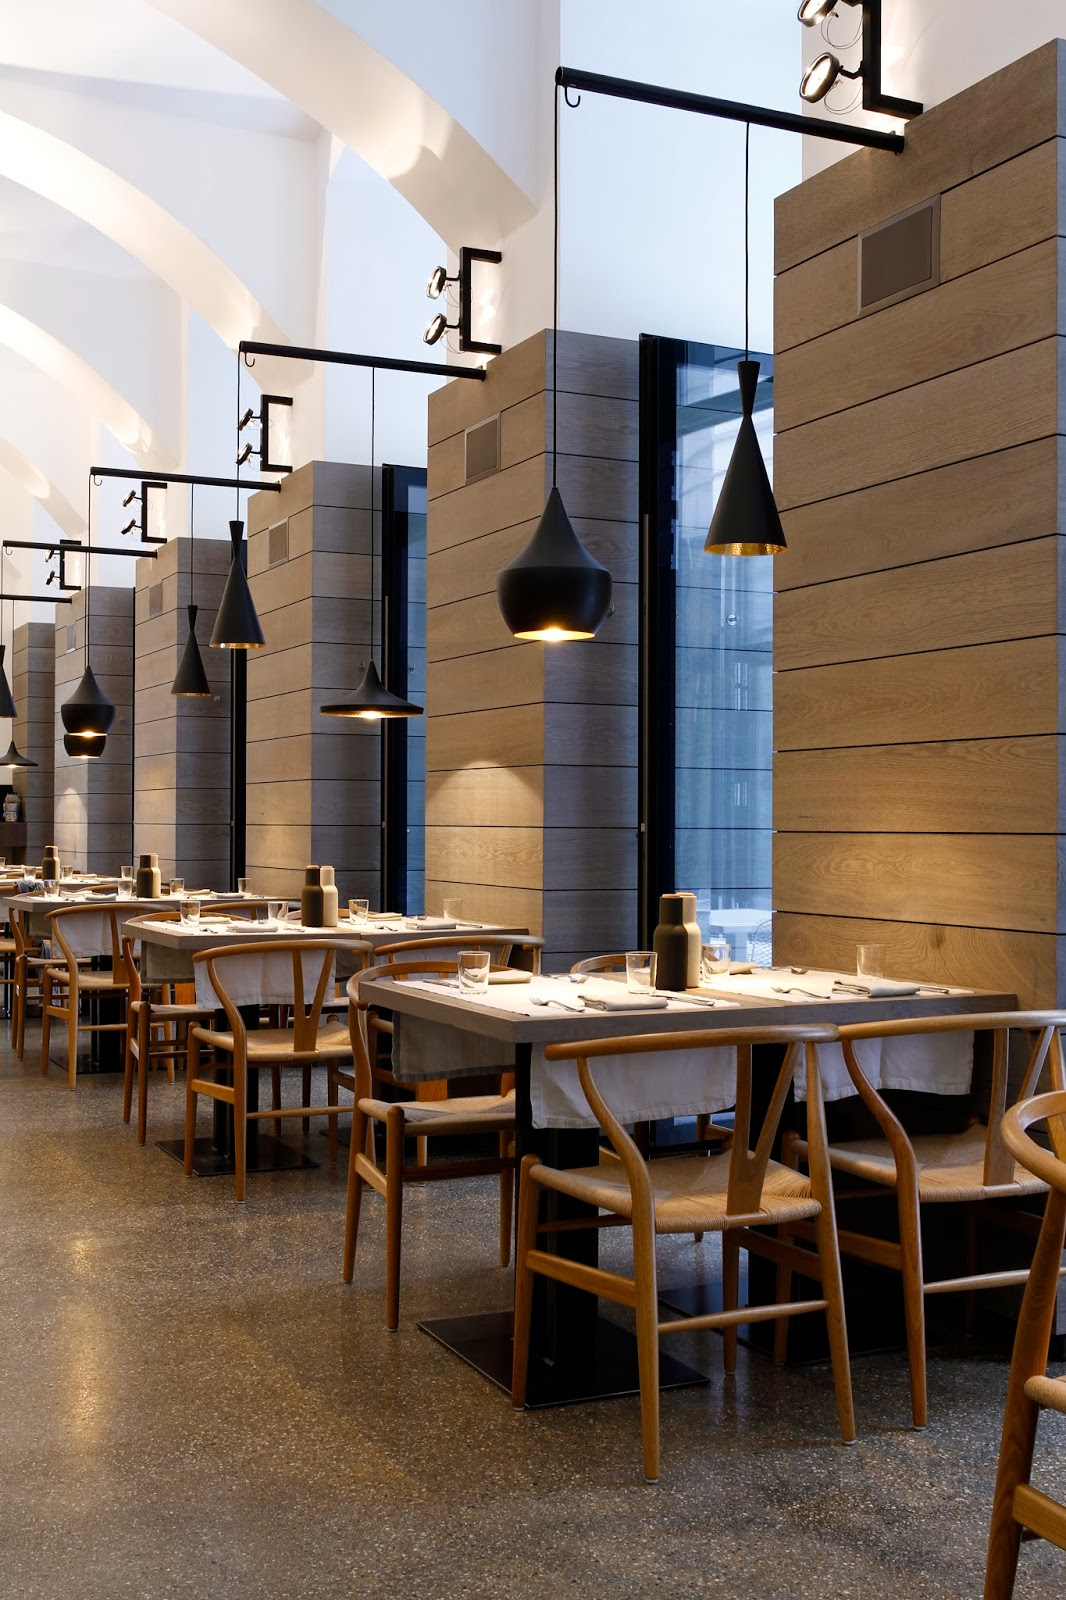 Rainer Wallmann: Commercial Interior Design / Restaurant